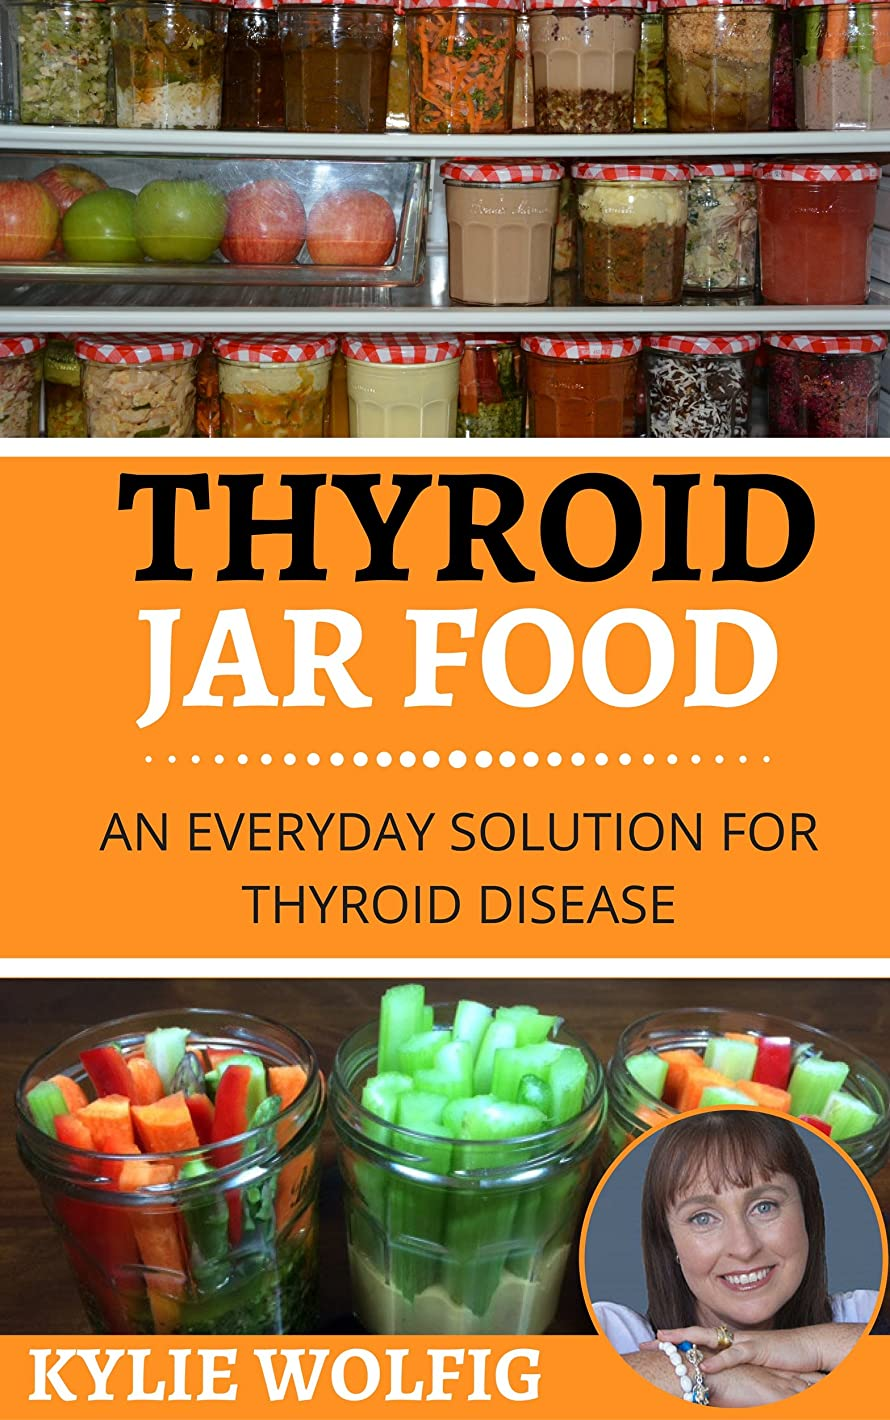 Thyroid Jar Food: An Everyday Solution for Thyroid Disease (English Edition)